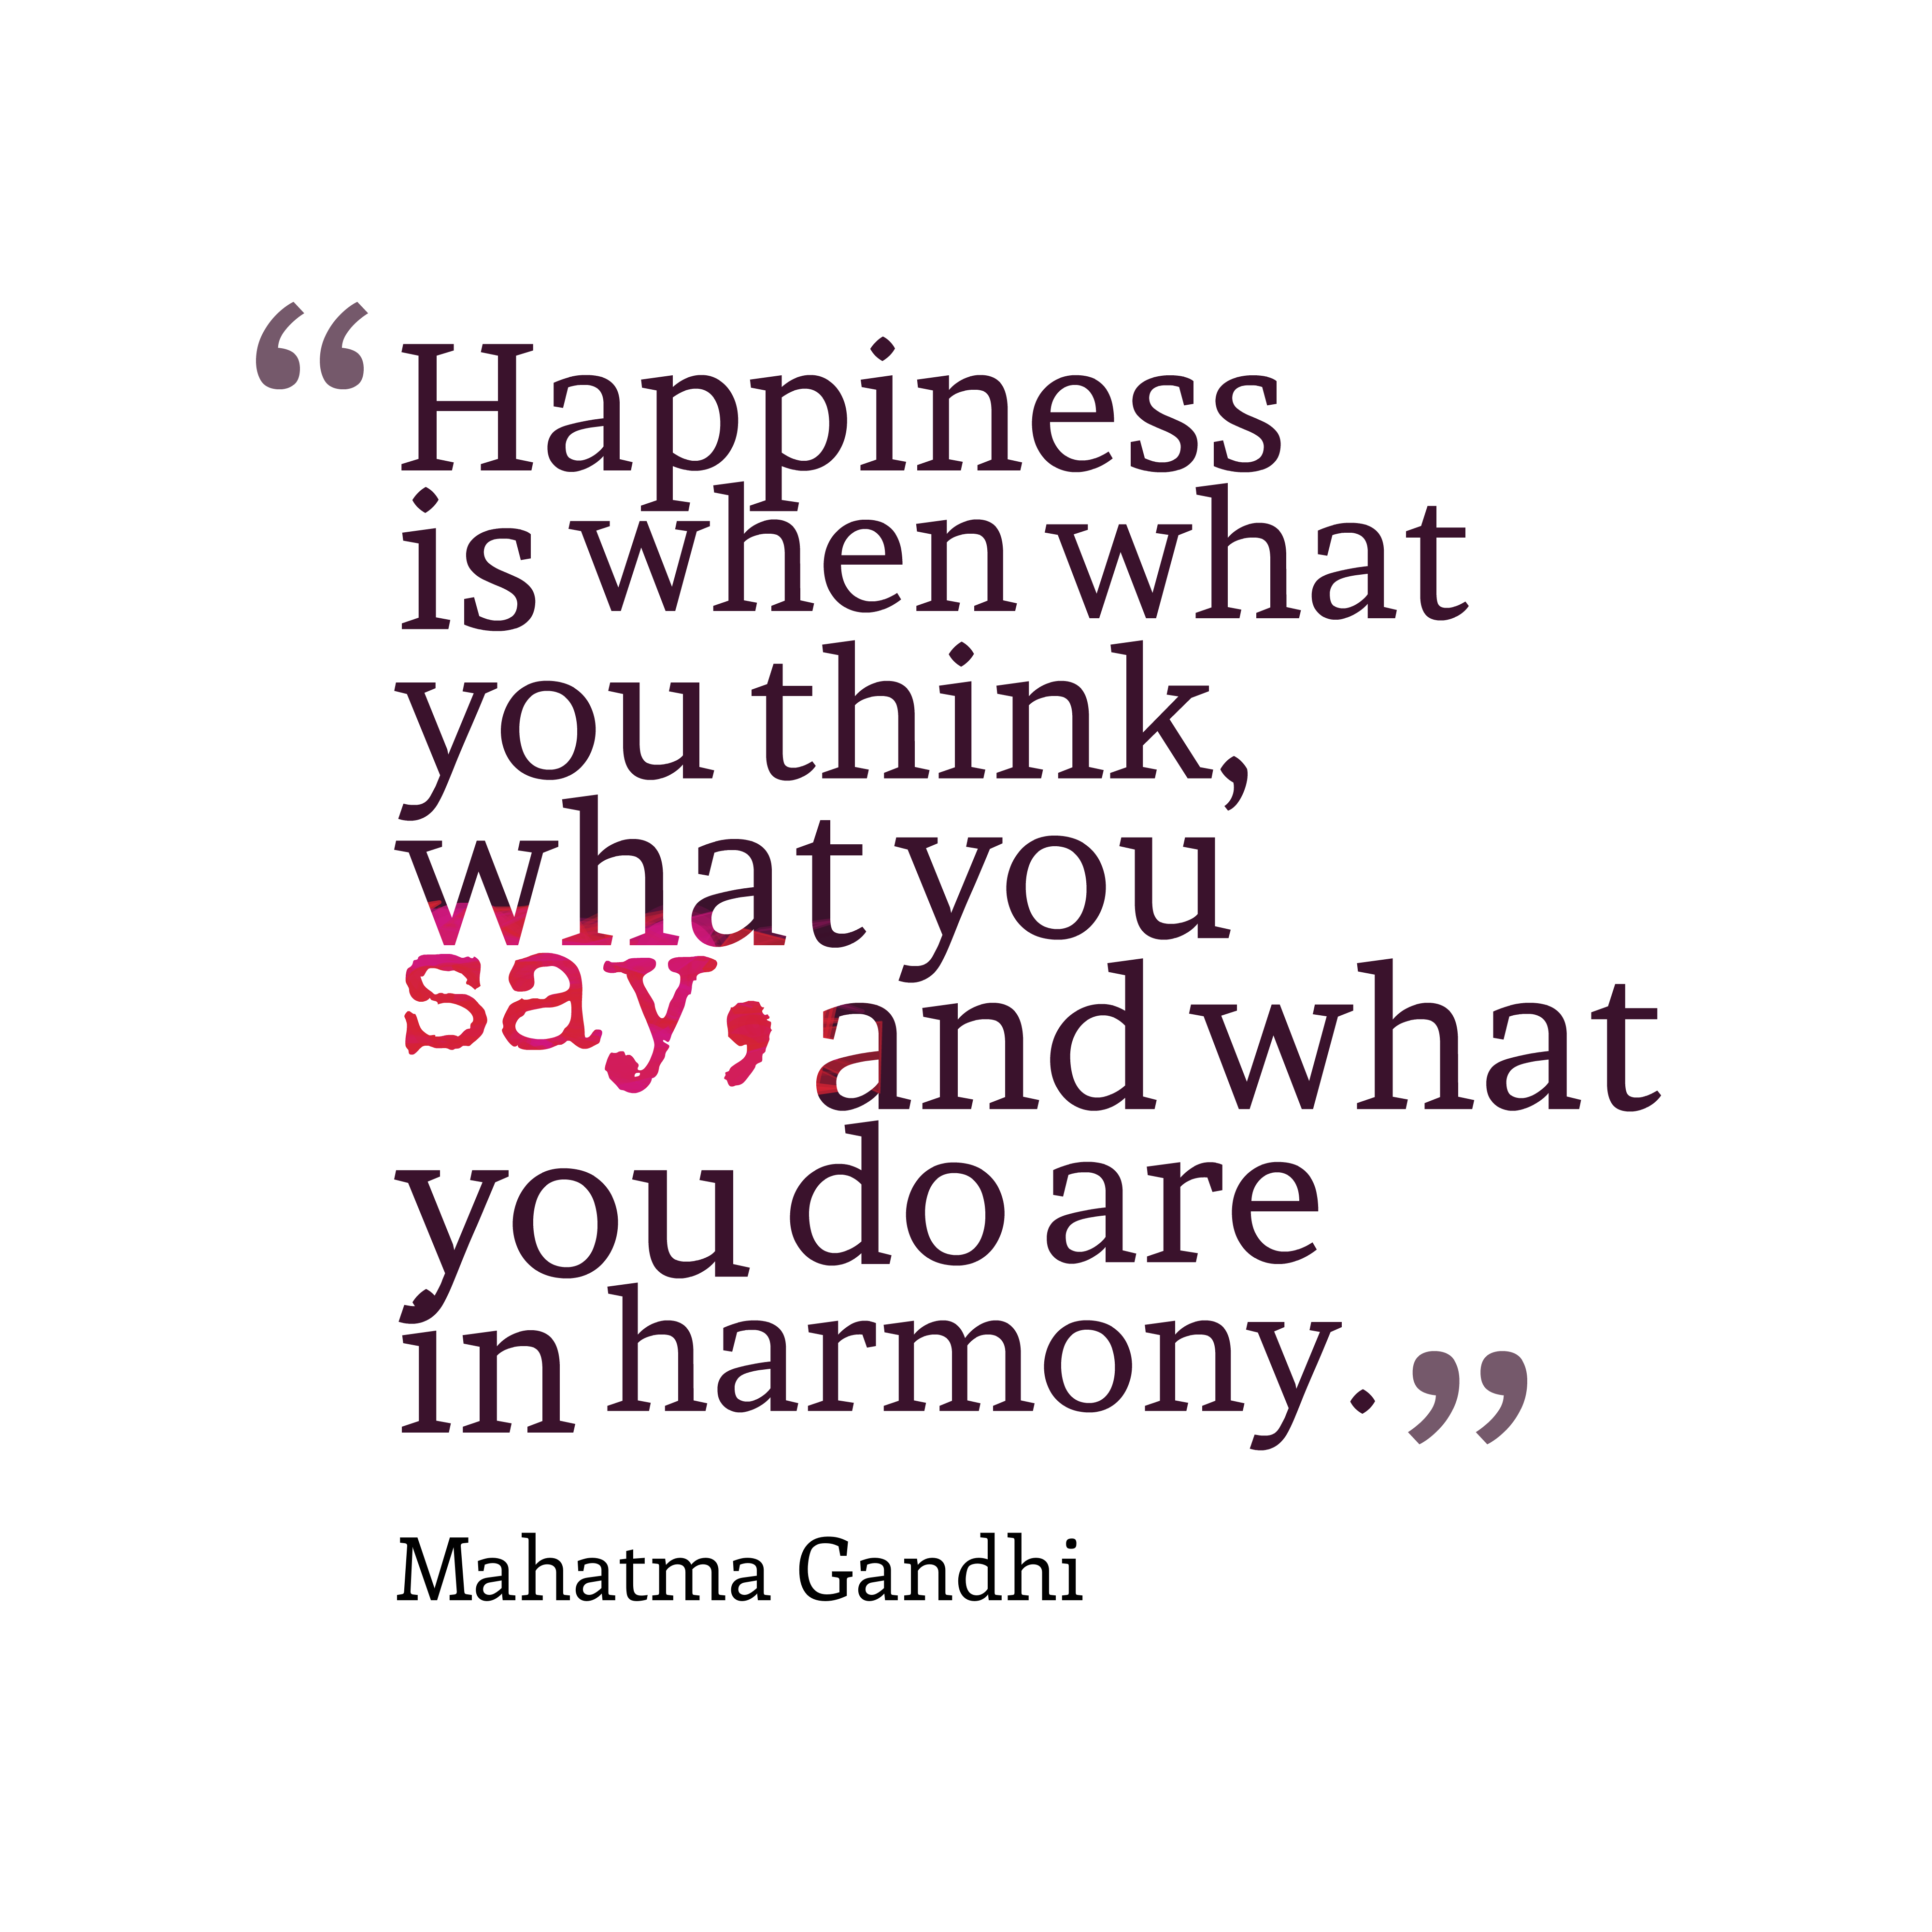 Quotes image of Happiness is when what you think, what you say, and what you do are in harmony.